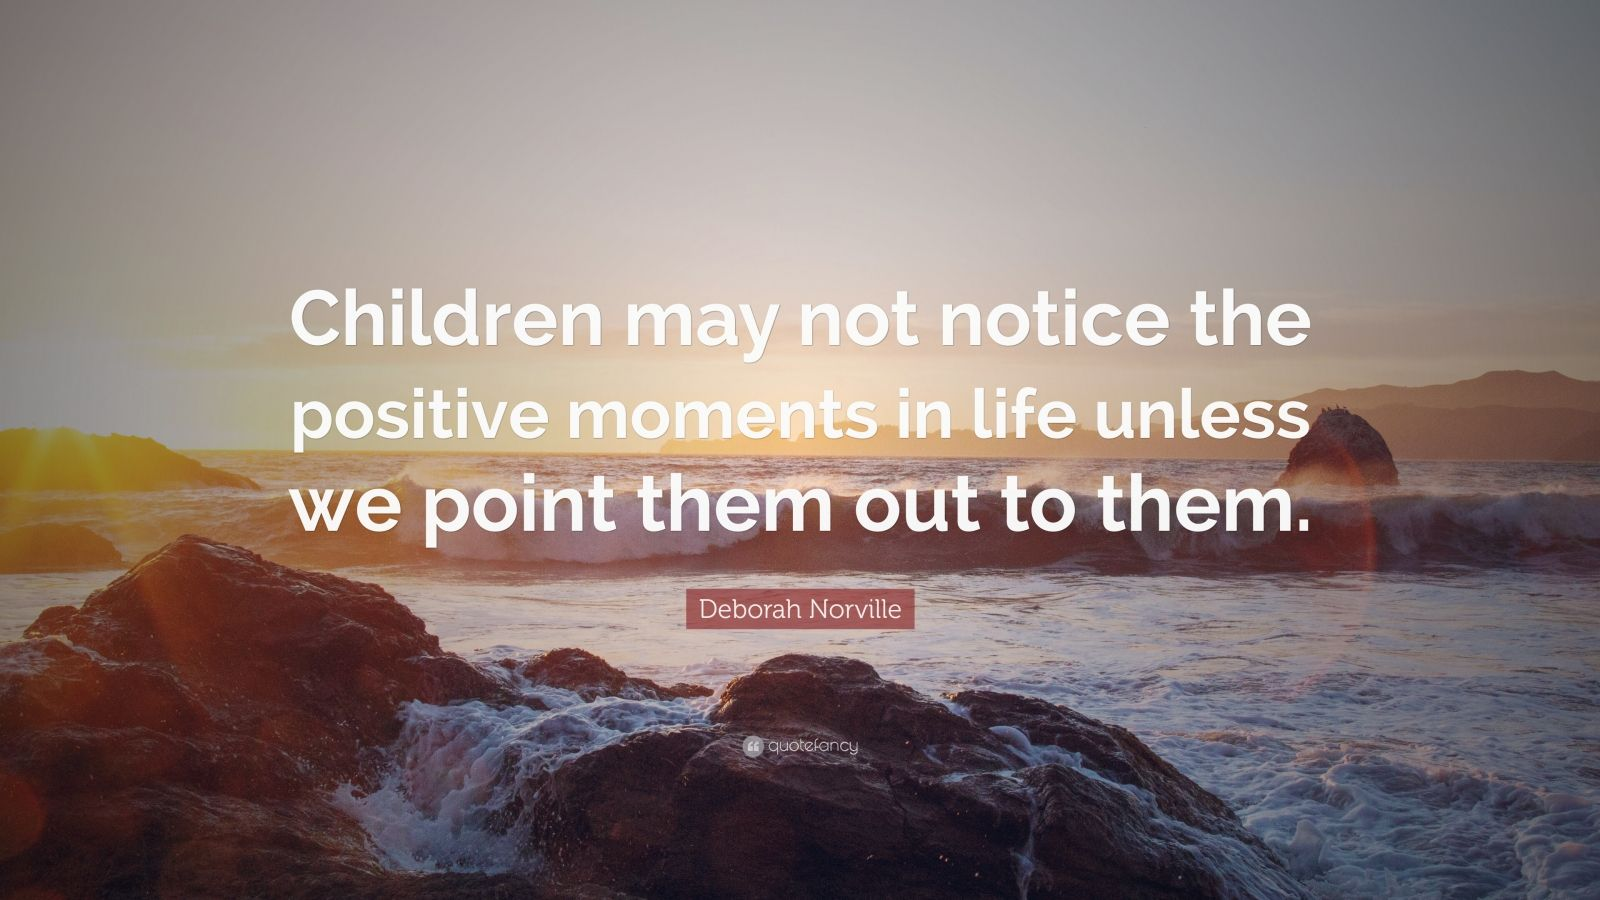 """Deborah Norville Quote: """"Children may not notice the positive moments in life unless we point them out to them."""""""